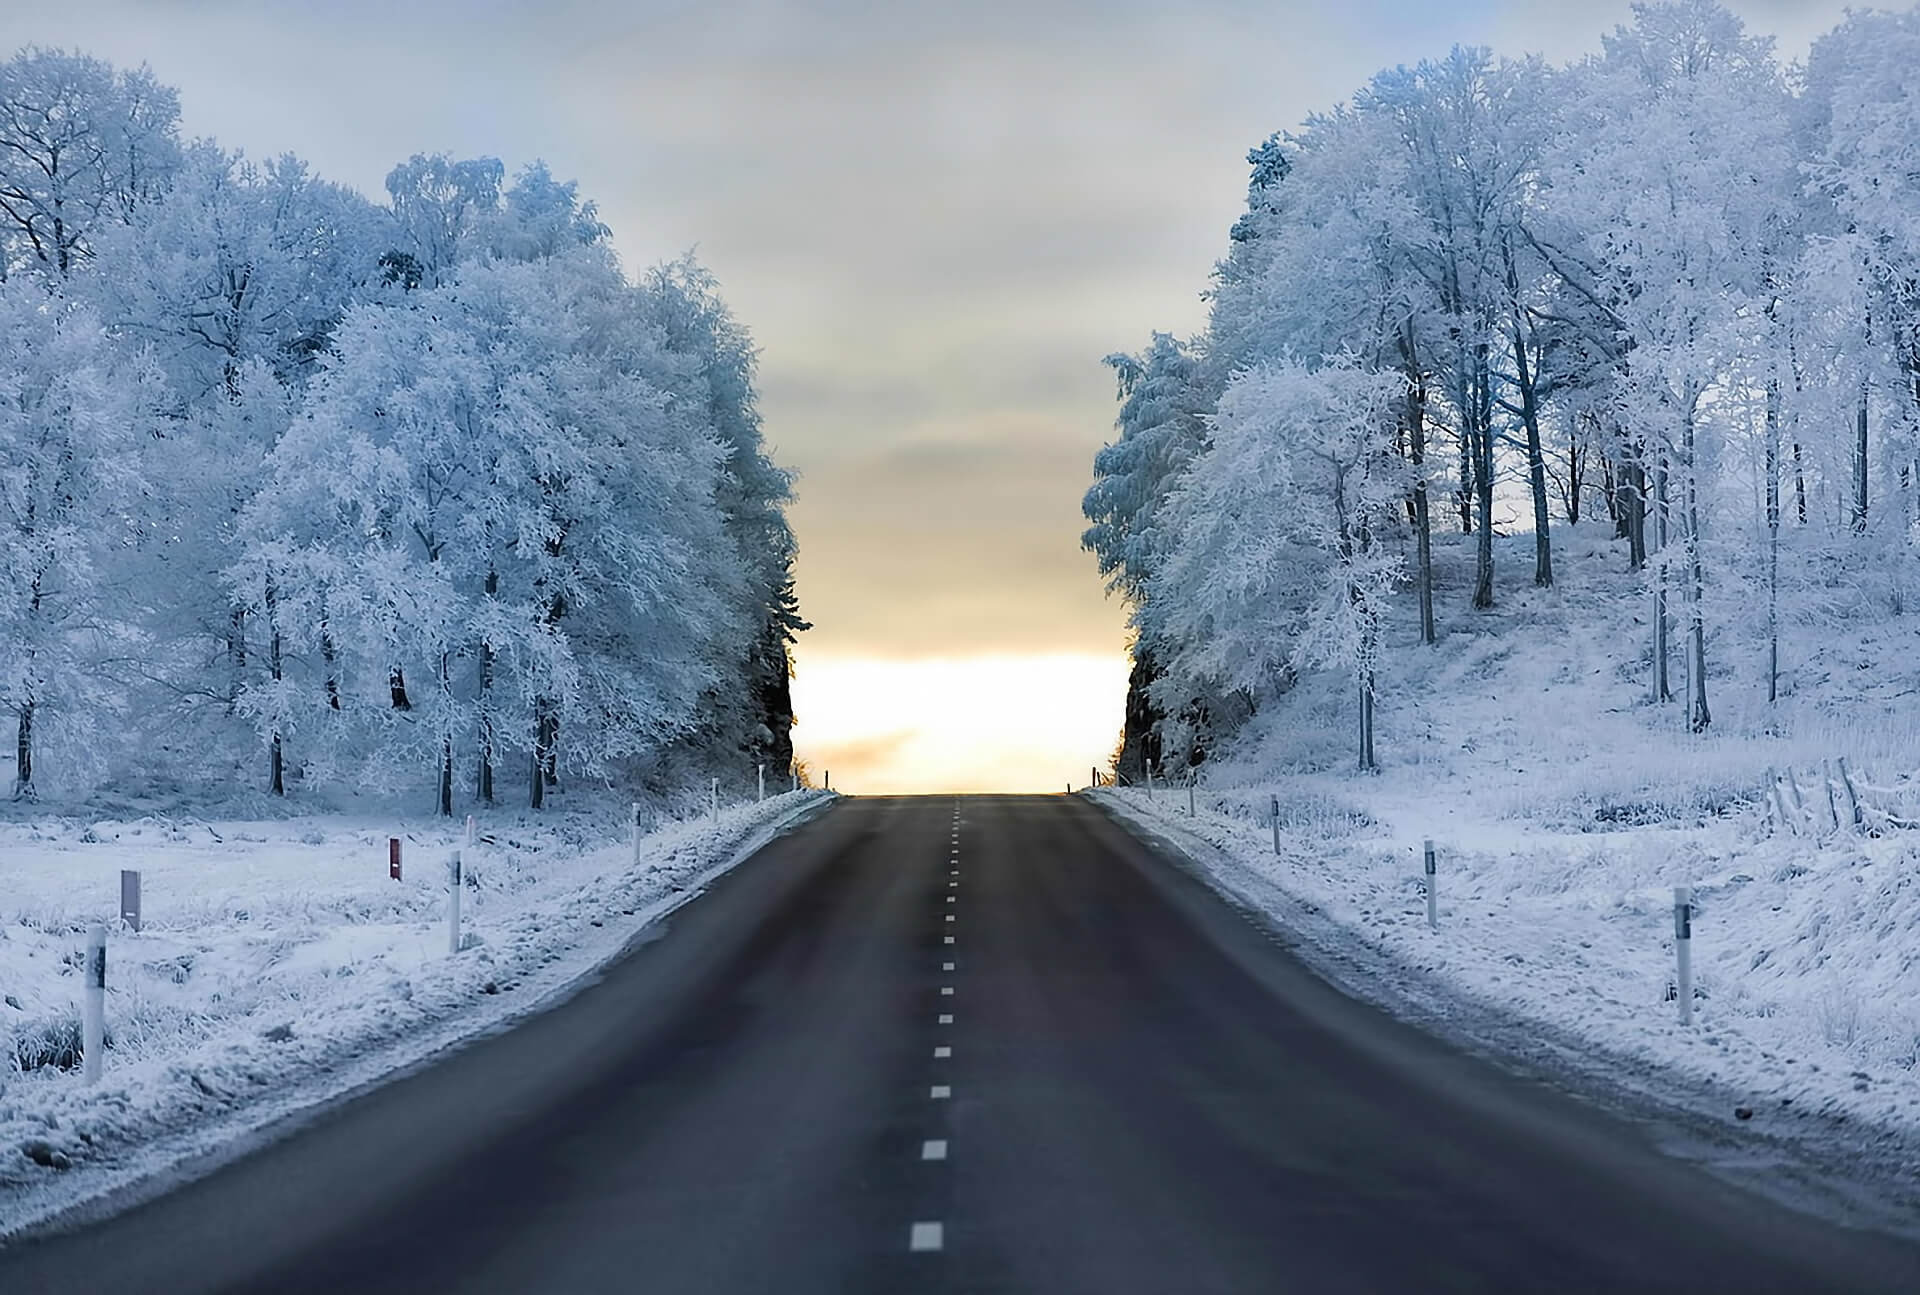 roads-winter-snow-wallpaper-1.jpg